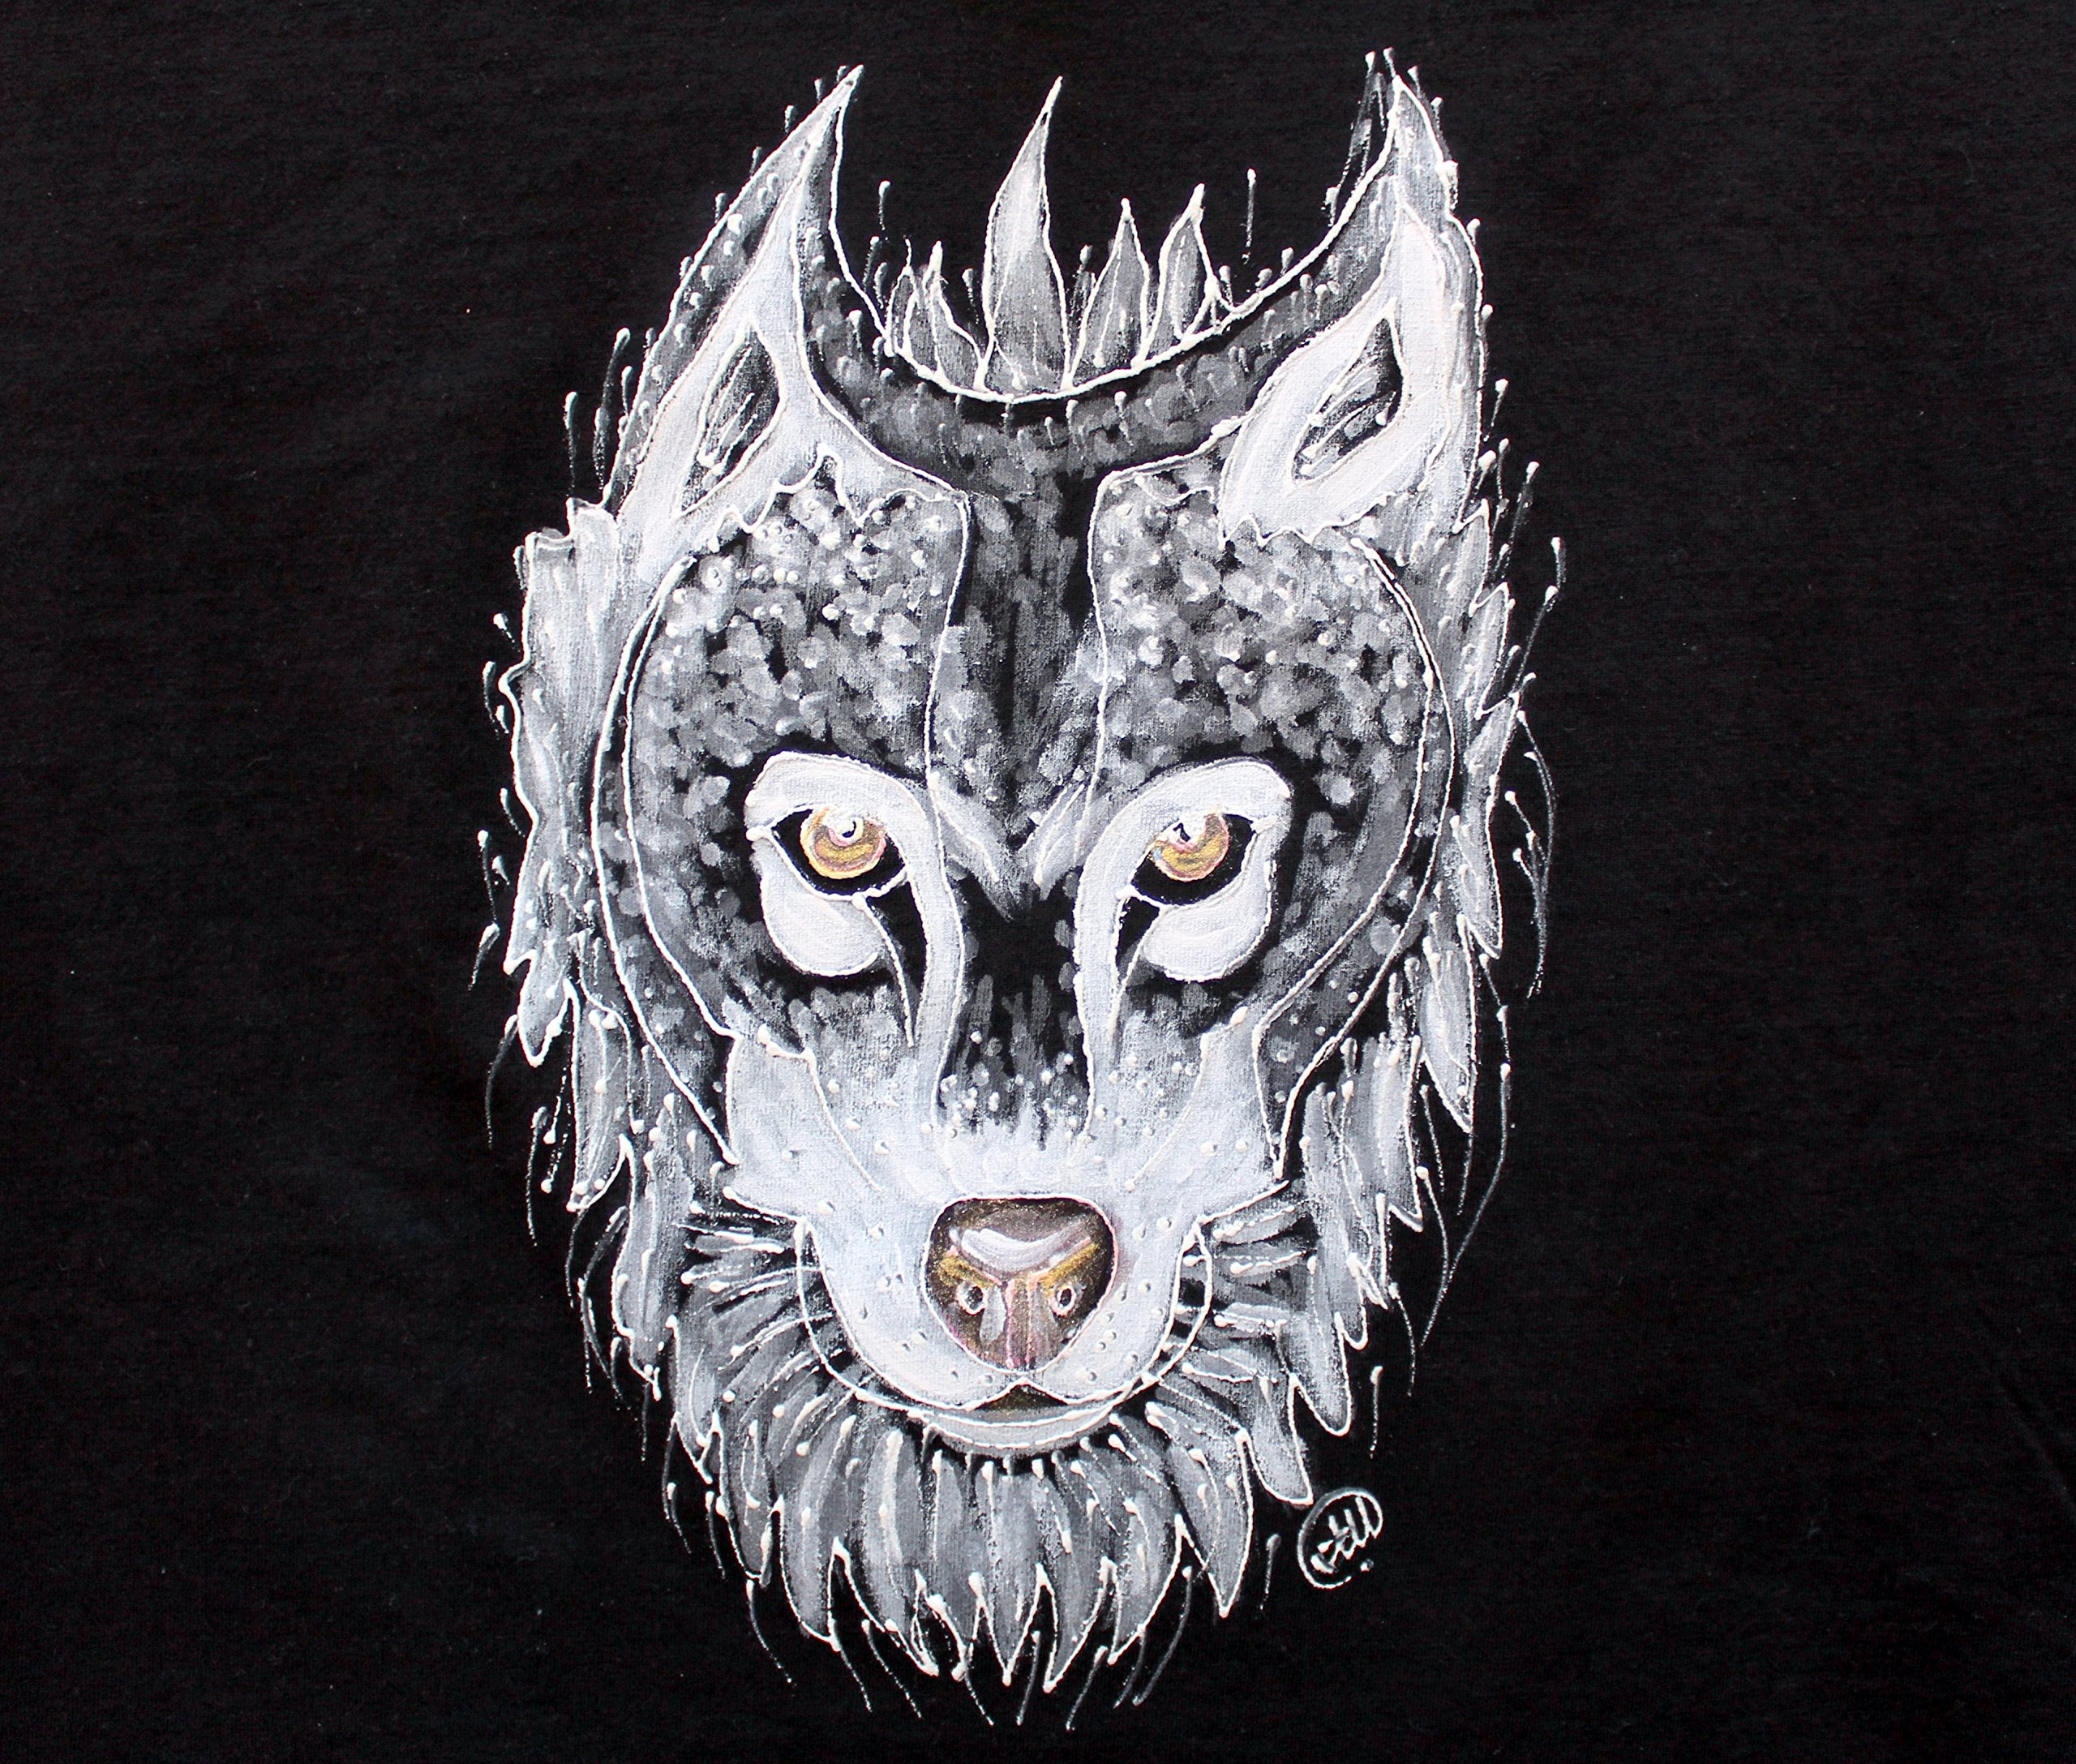 PAINTED WOLF T-SHIRT,Wolf Painting,White Wolf Black T-shirt,Wolf Design,American Apparel T-shirt,Animal Lover Tee, Wolf Tee,size XL.